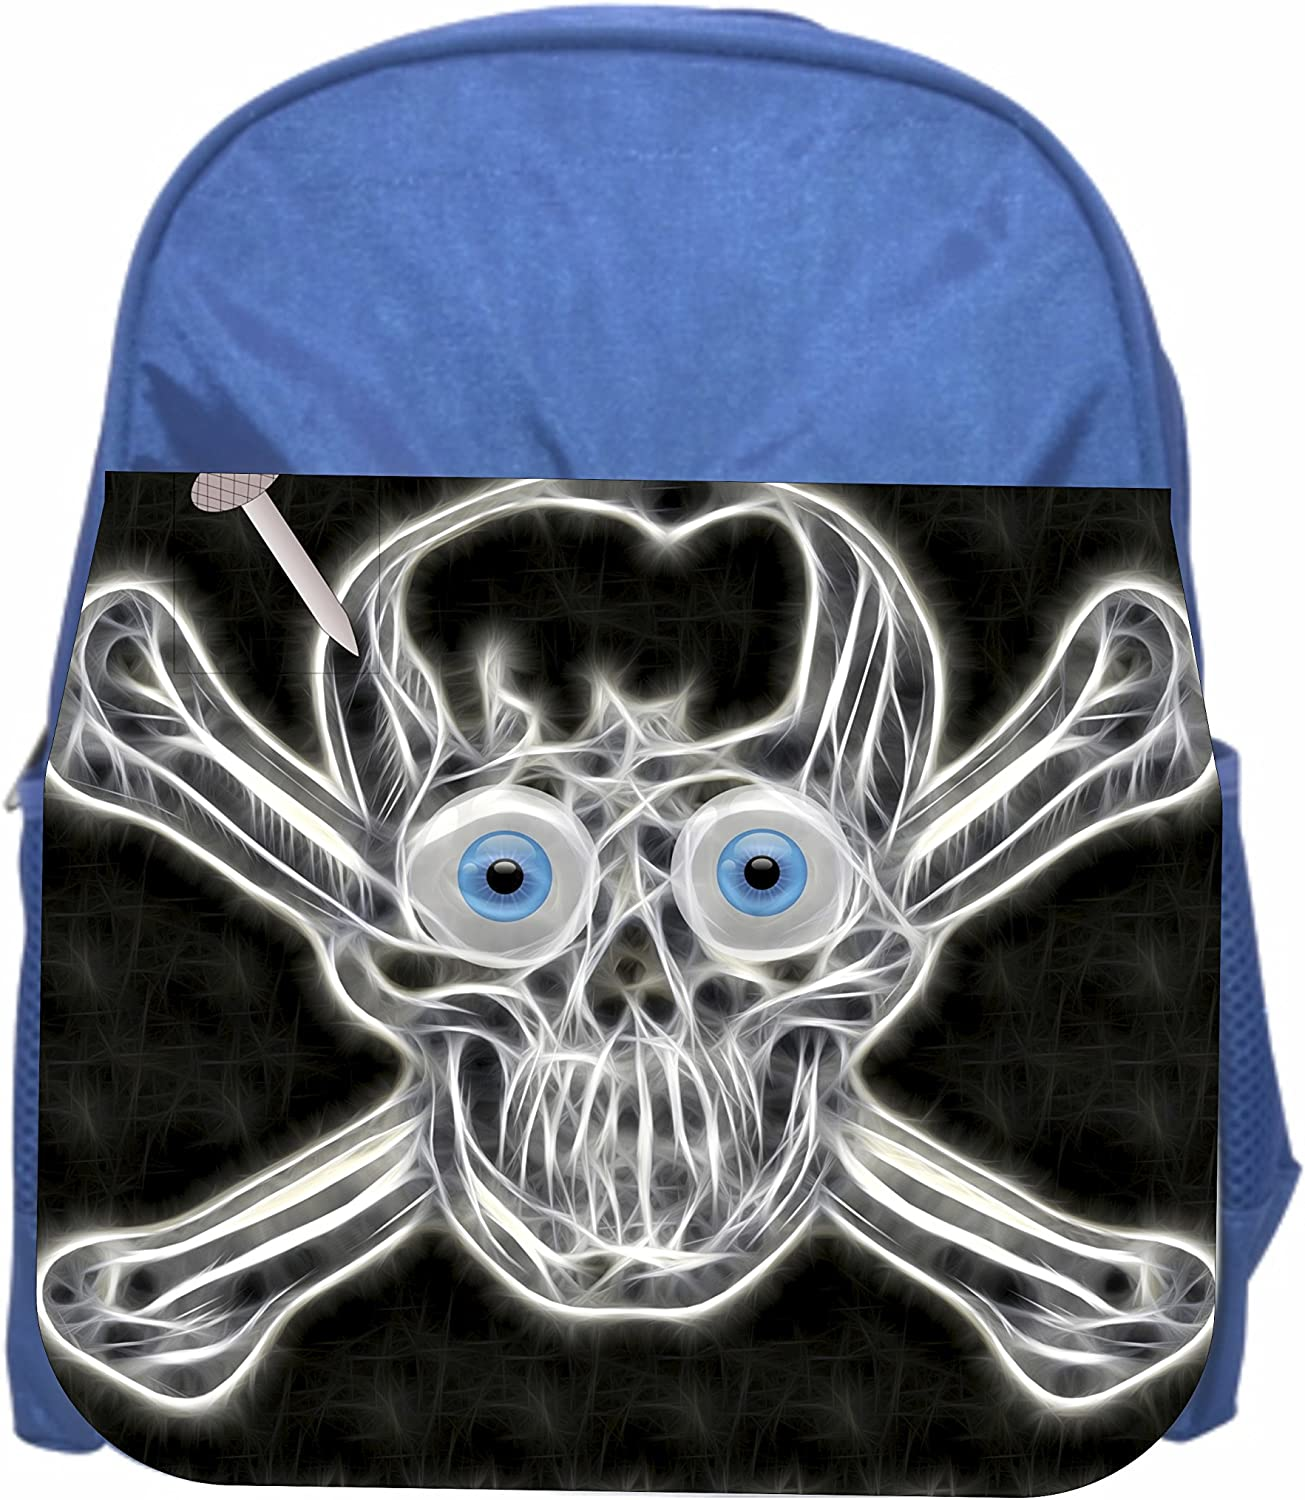 Skull /& Crossbones Boys Blue Preschool Toddler Childrens Backpack /& Lunch Box Set